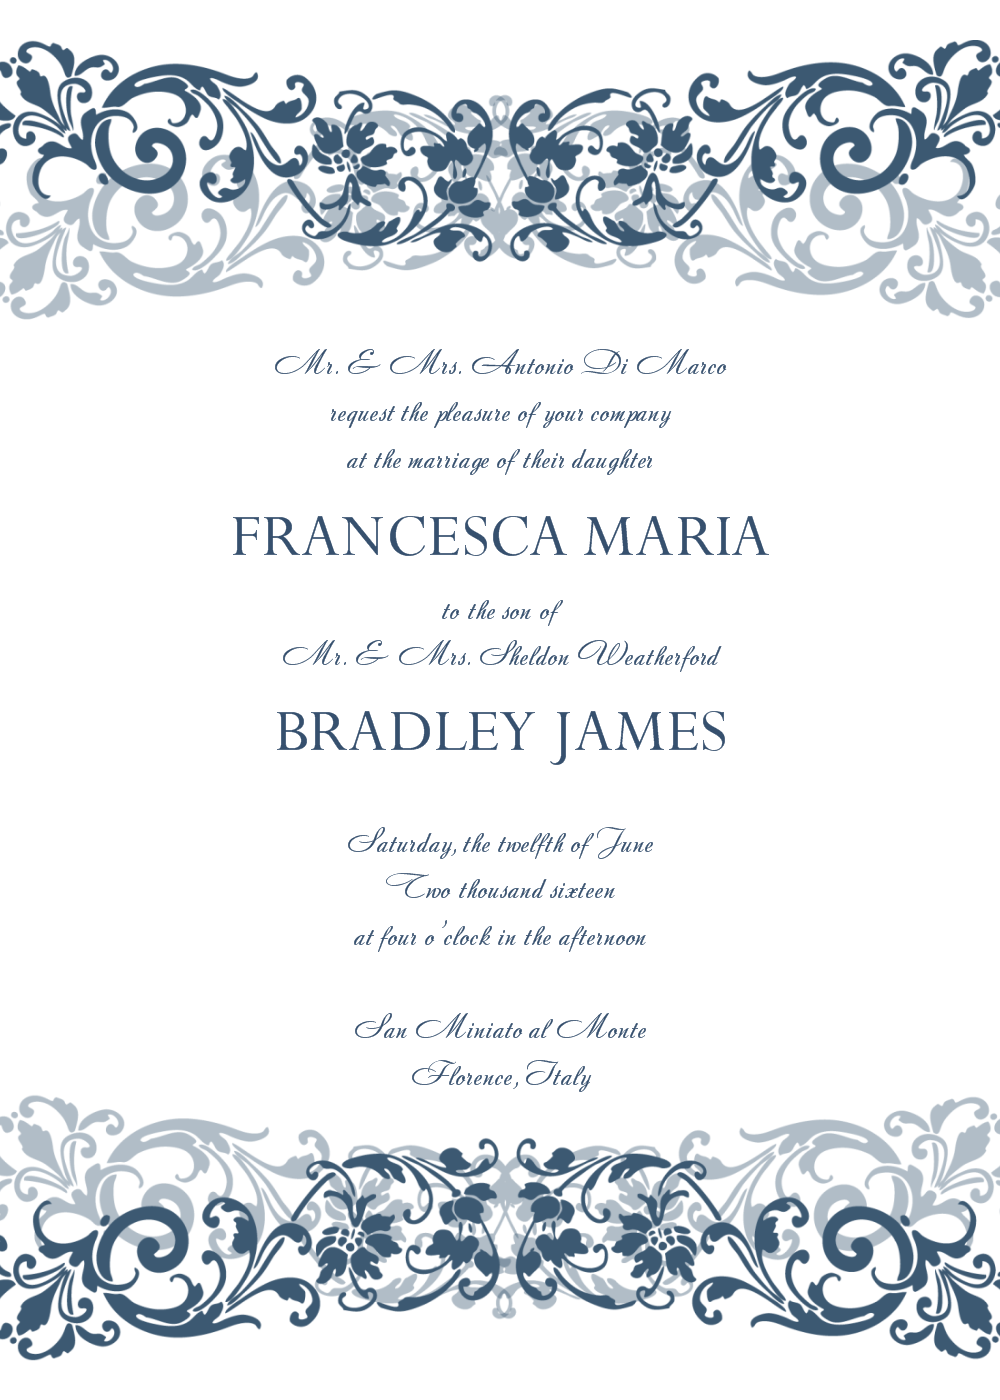 Free Wedding Invitations Templates St Bridal World - Cute wedding invitation templates